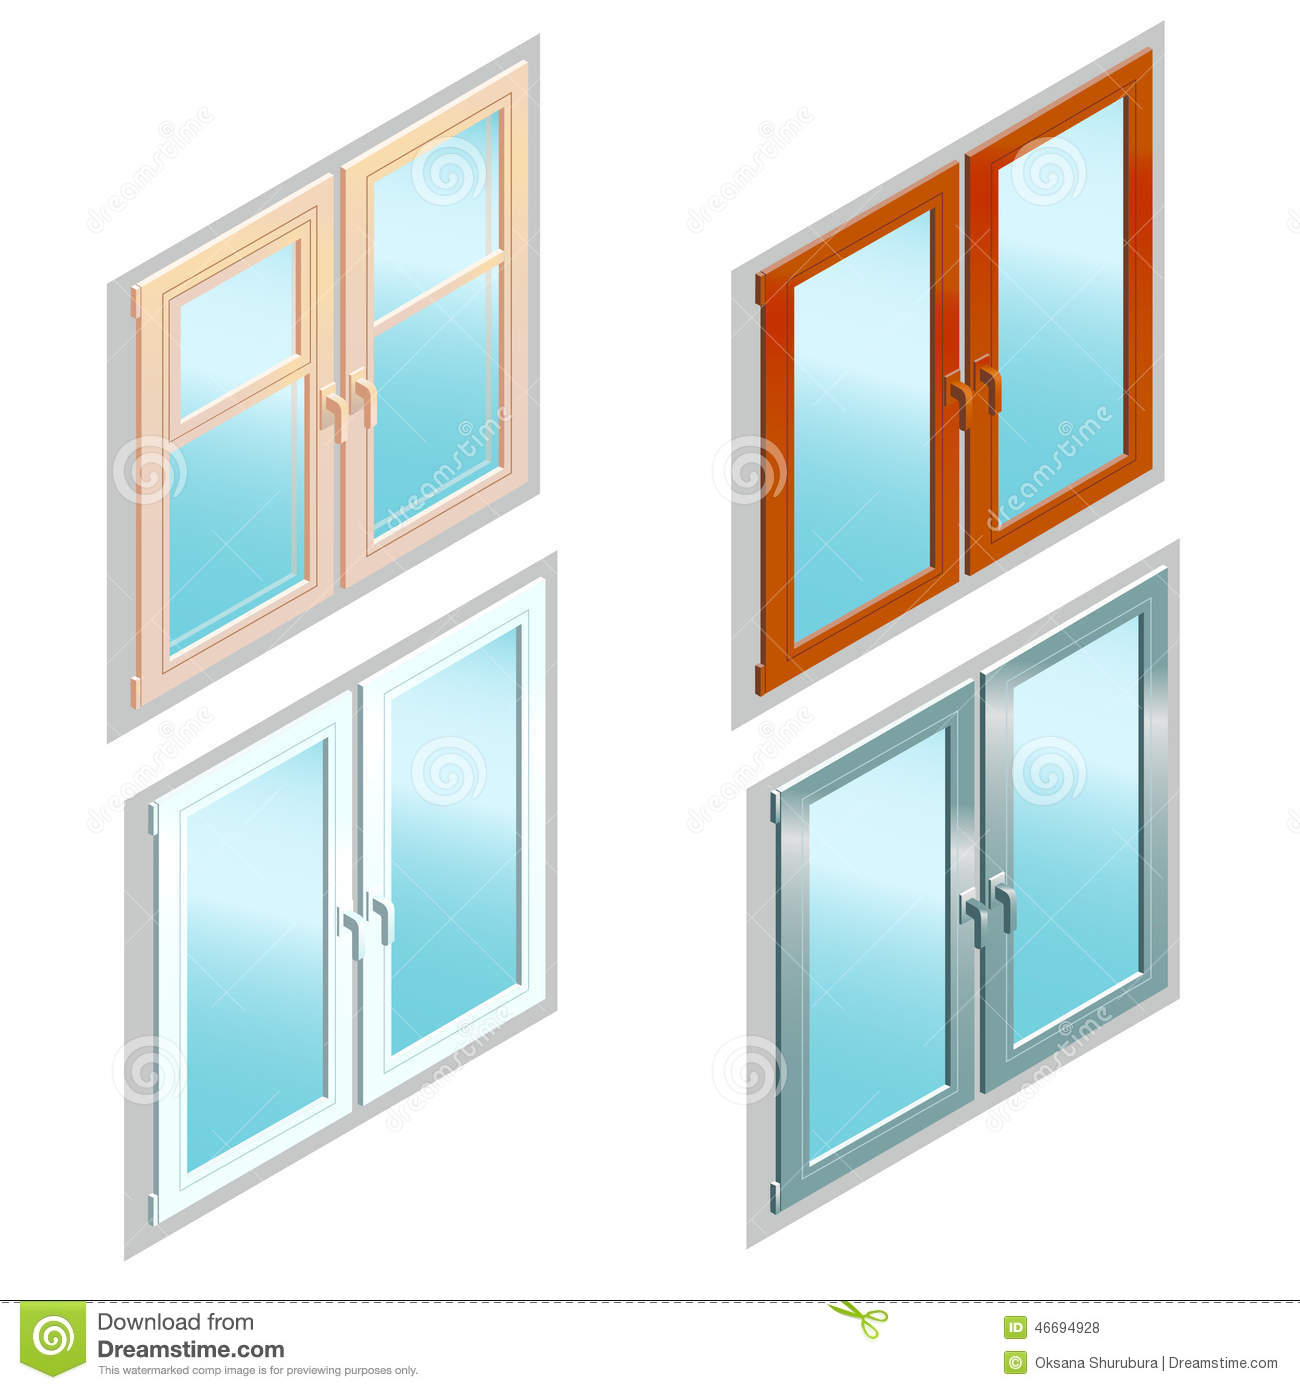 Different types of windows in isometric view stock vector for Different types of windows